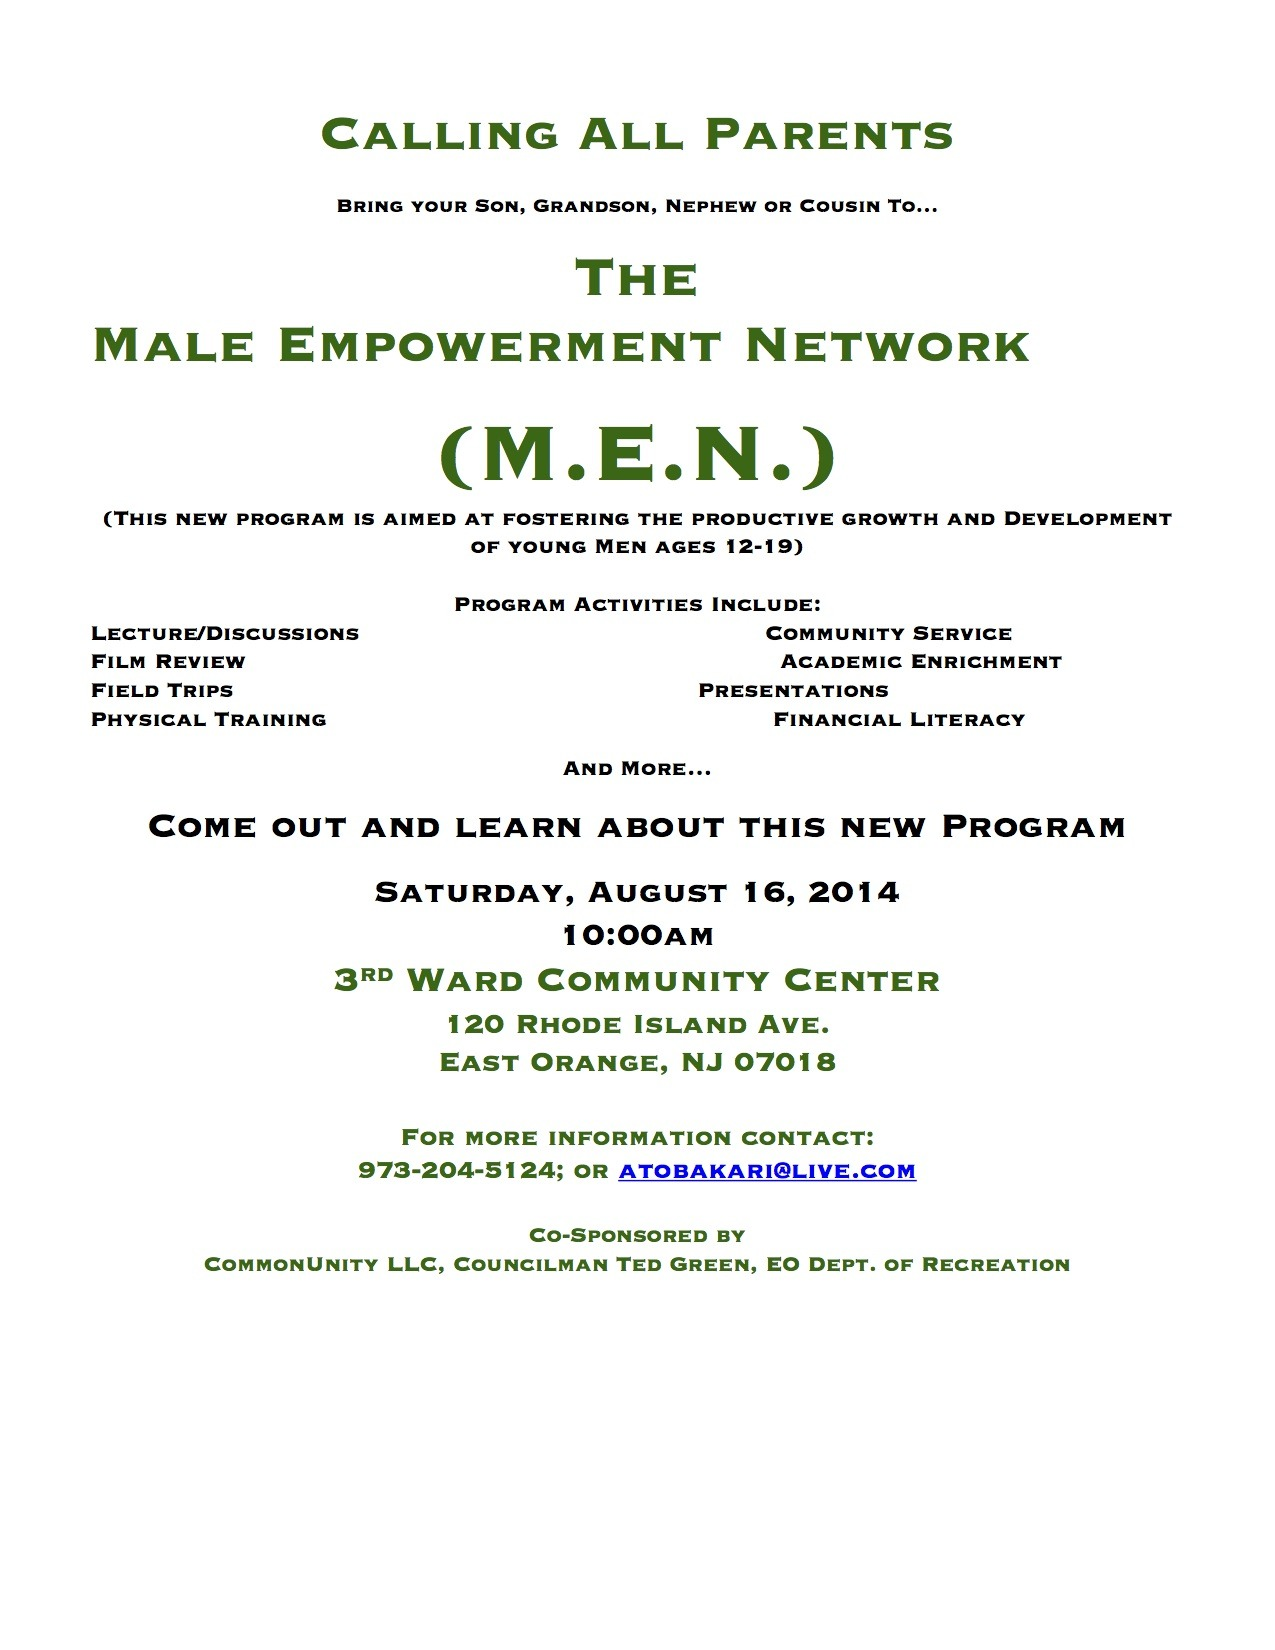 1becb65b111e3f59c353_MEN_flyer_copy_2.jpg